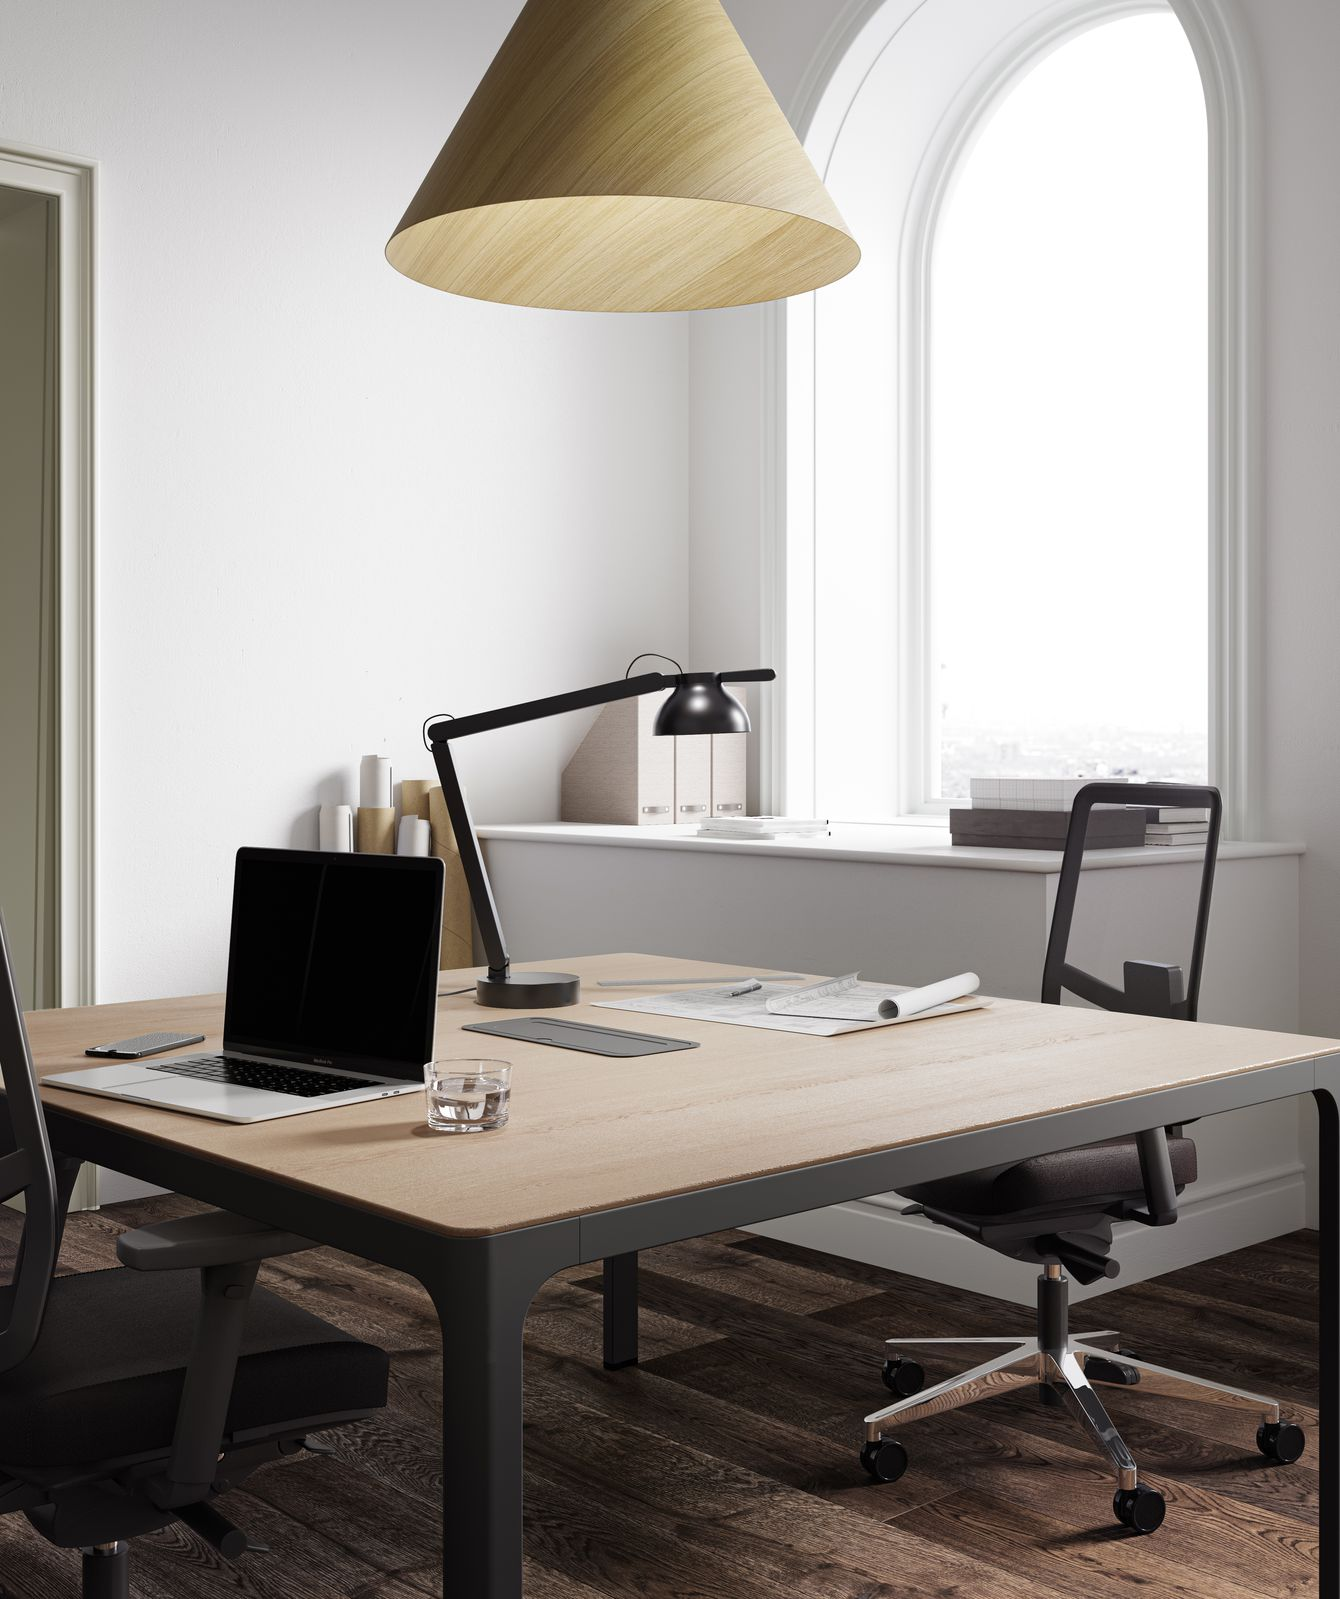 Office with HAY 30 degree lamp, JAMES MESH office chair, wooden desk and black lamp in Nordic Light